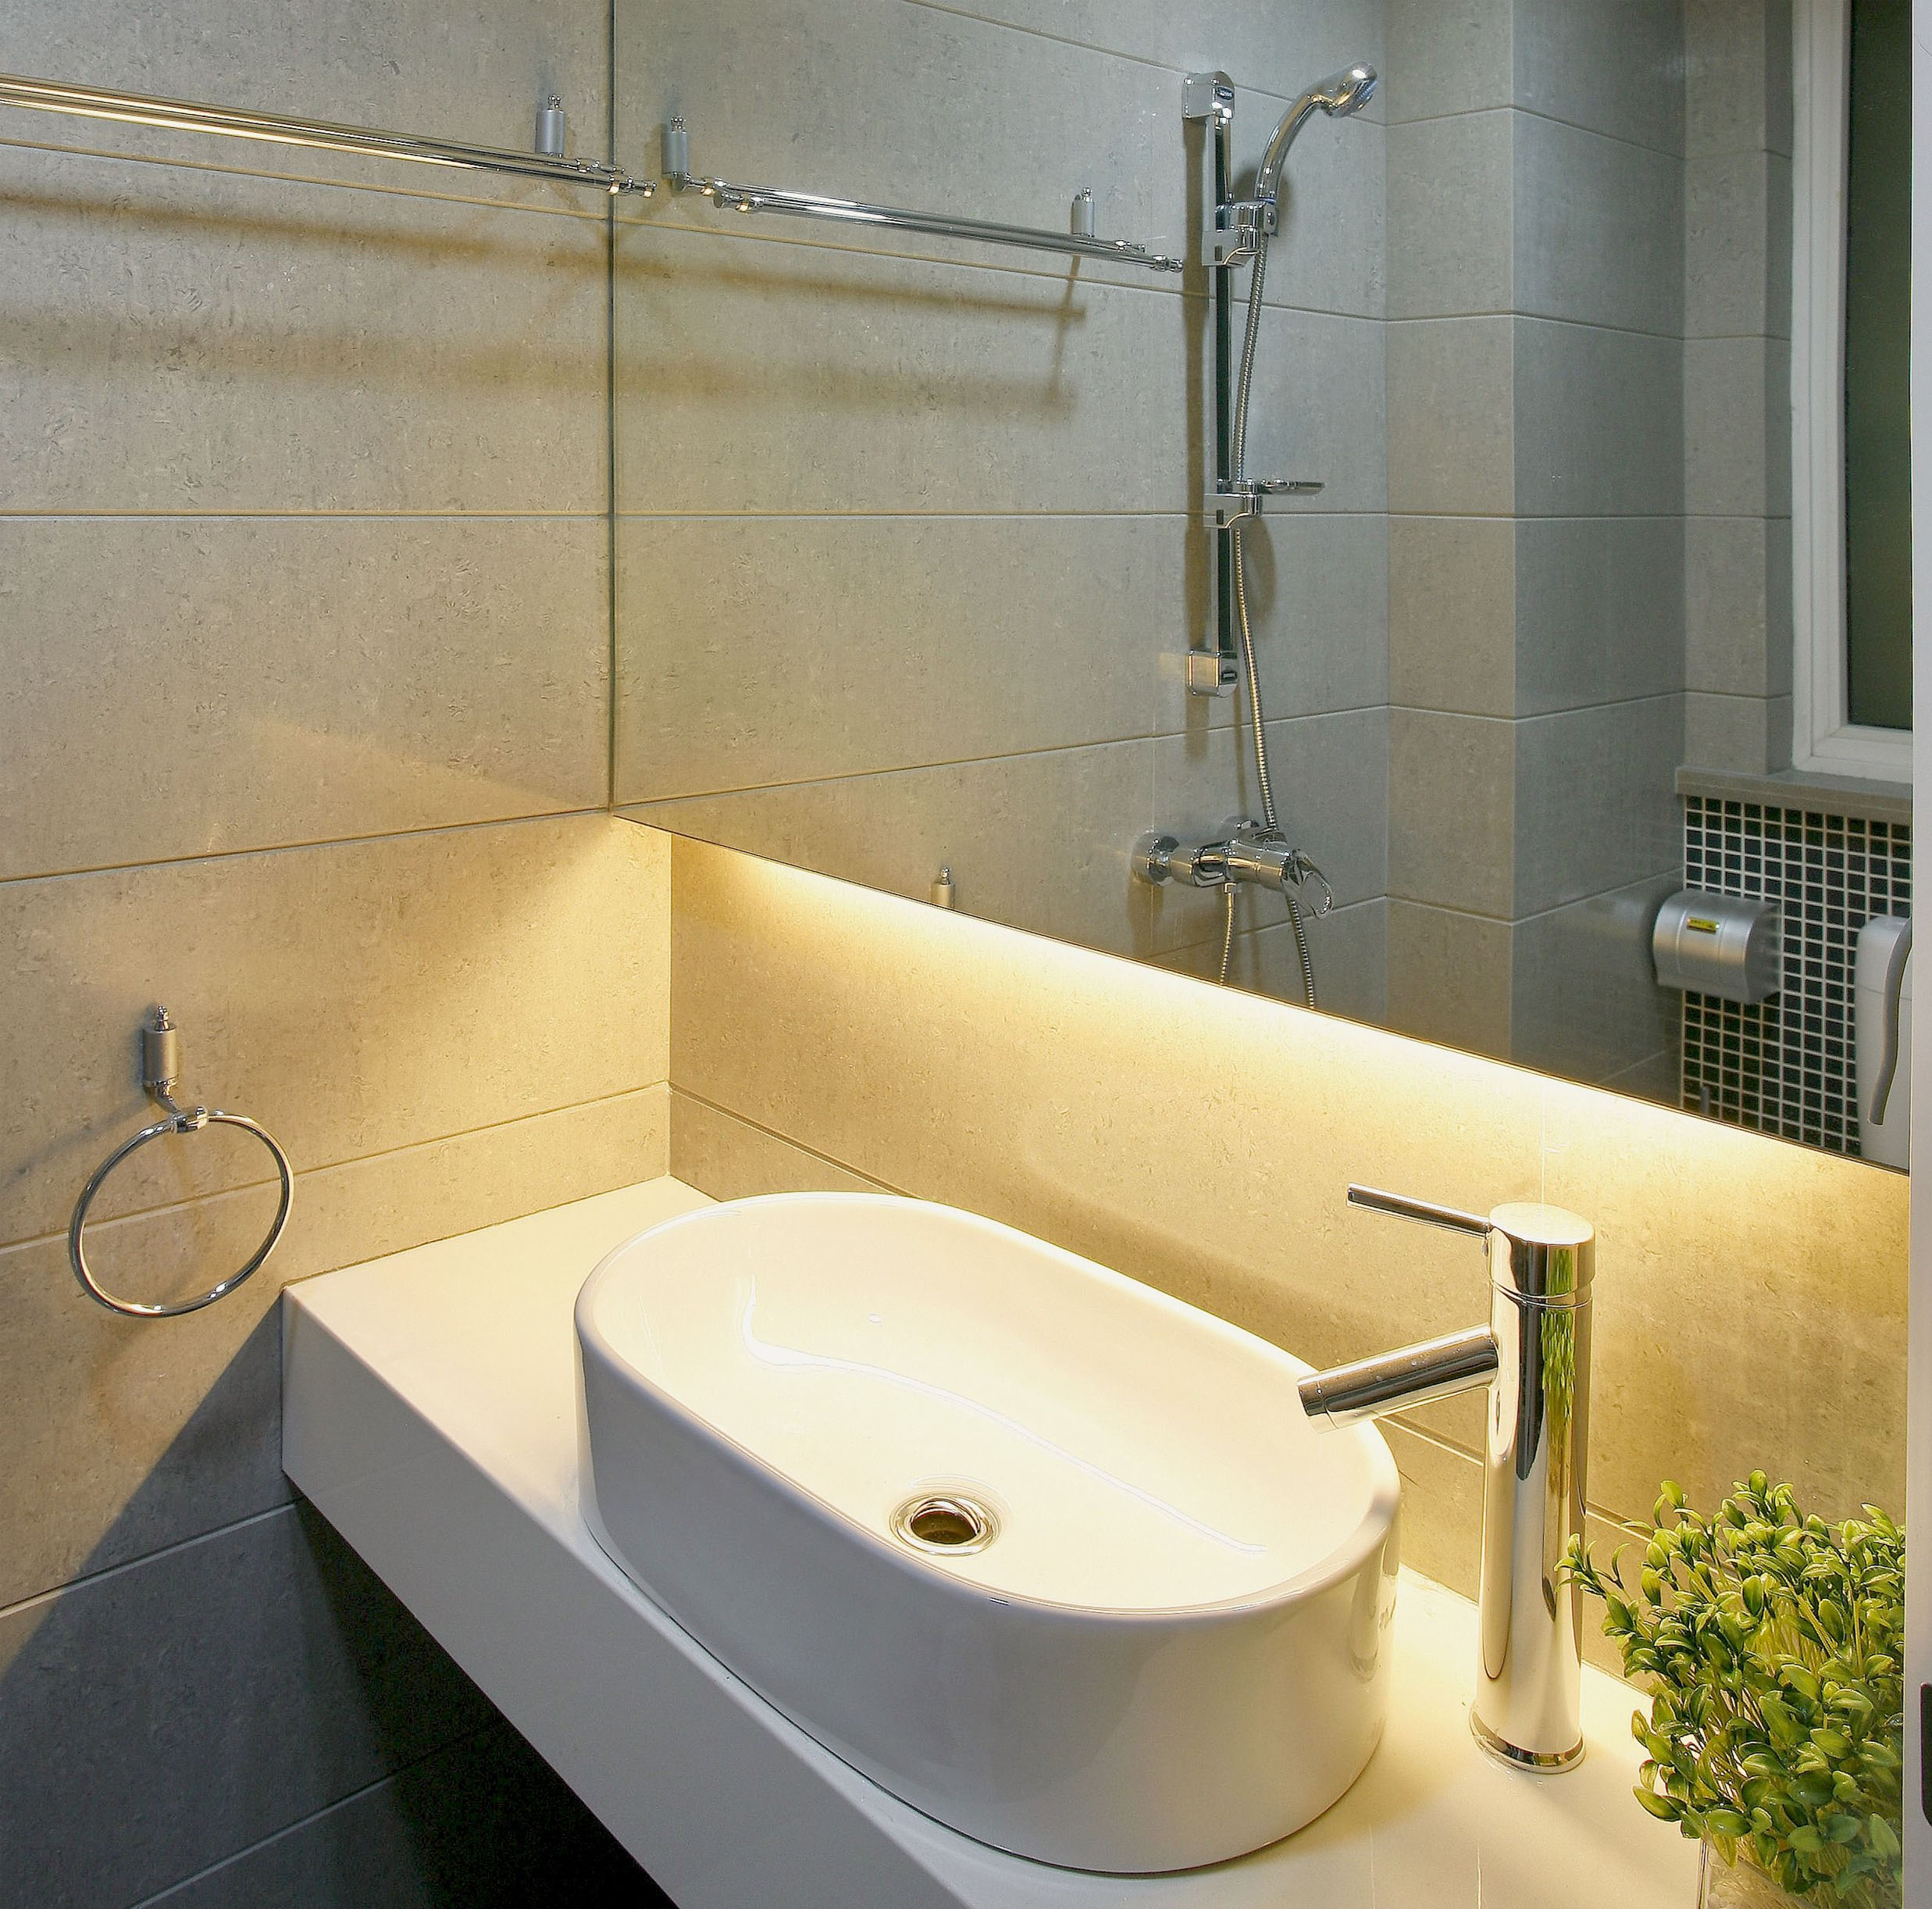 Luxury CP Bathroom Taps Fittings Manufacturers, CP Bathroom Fittings